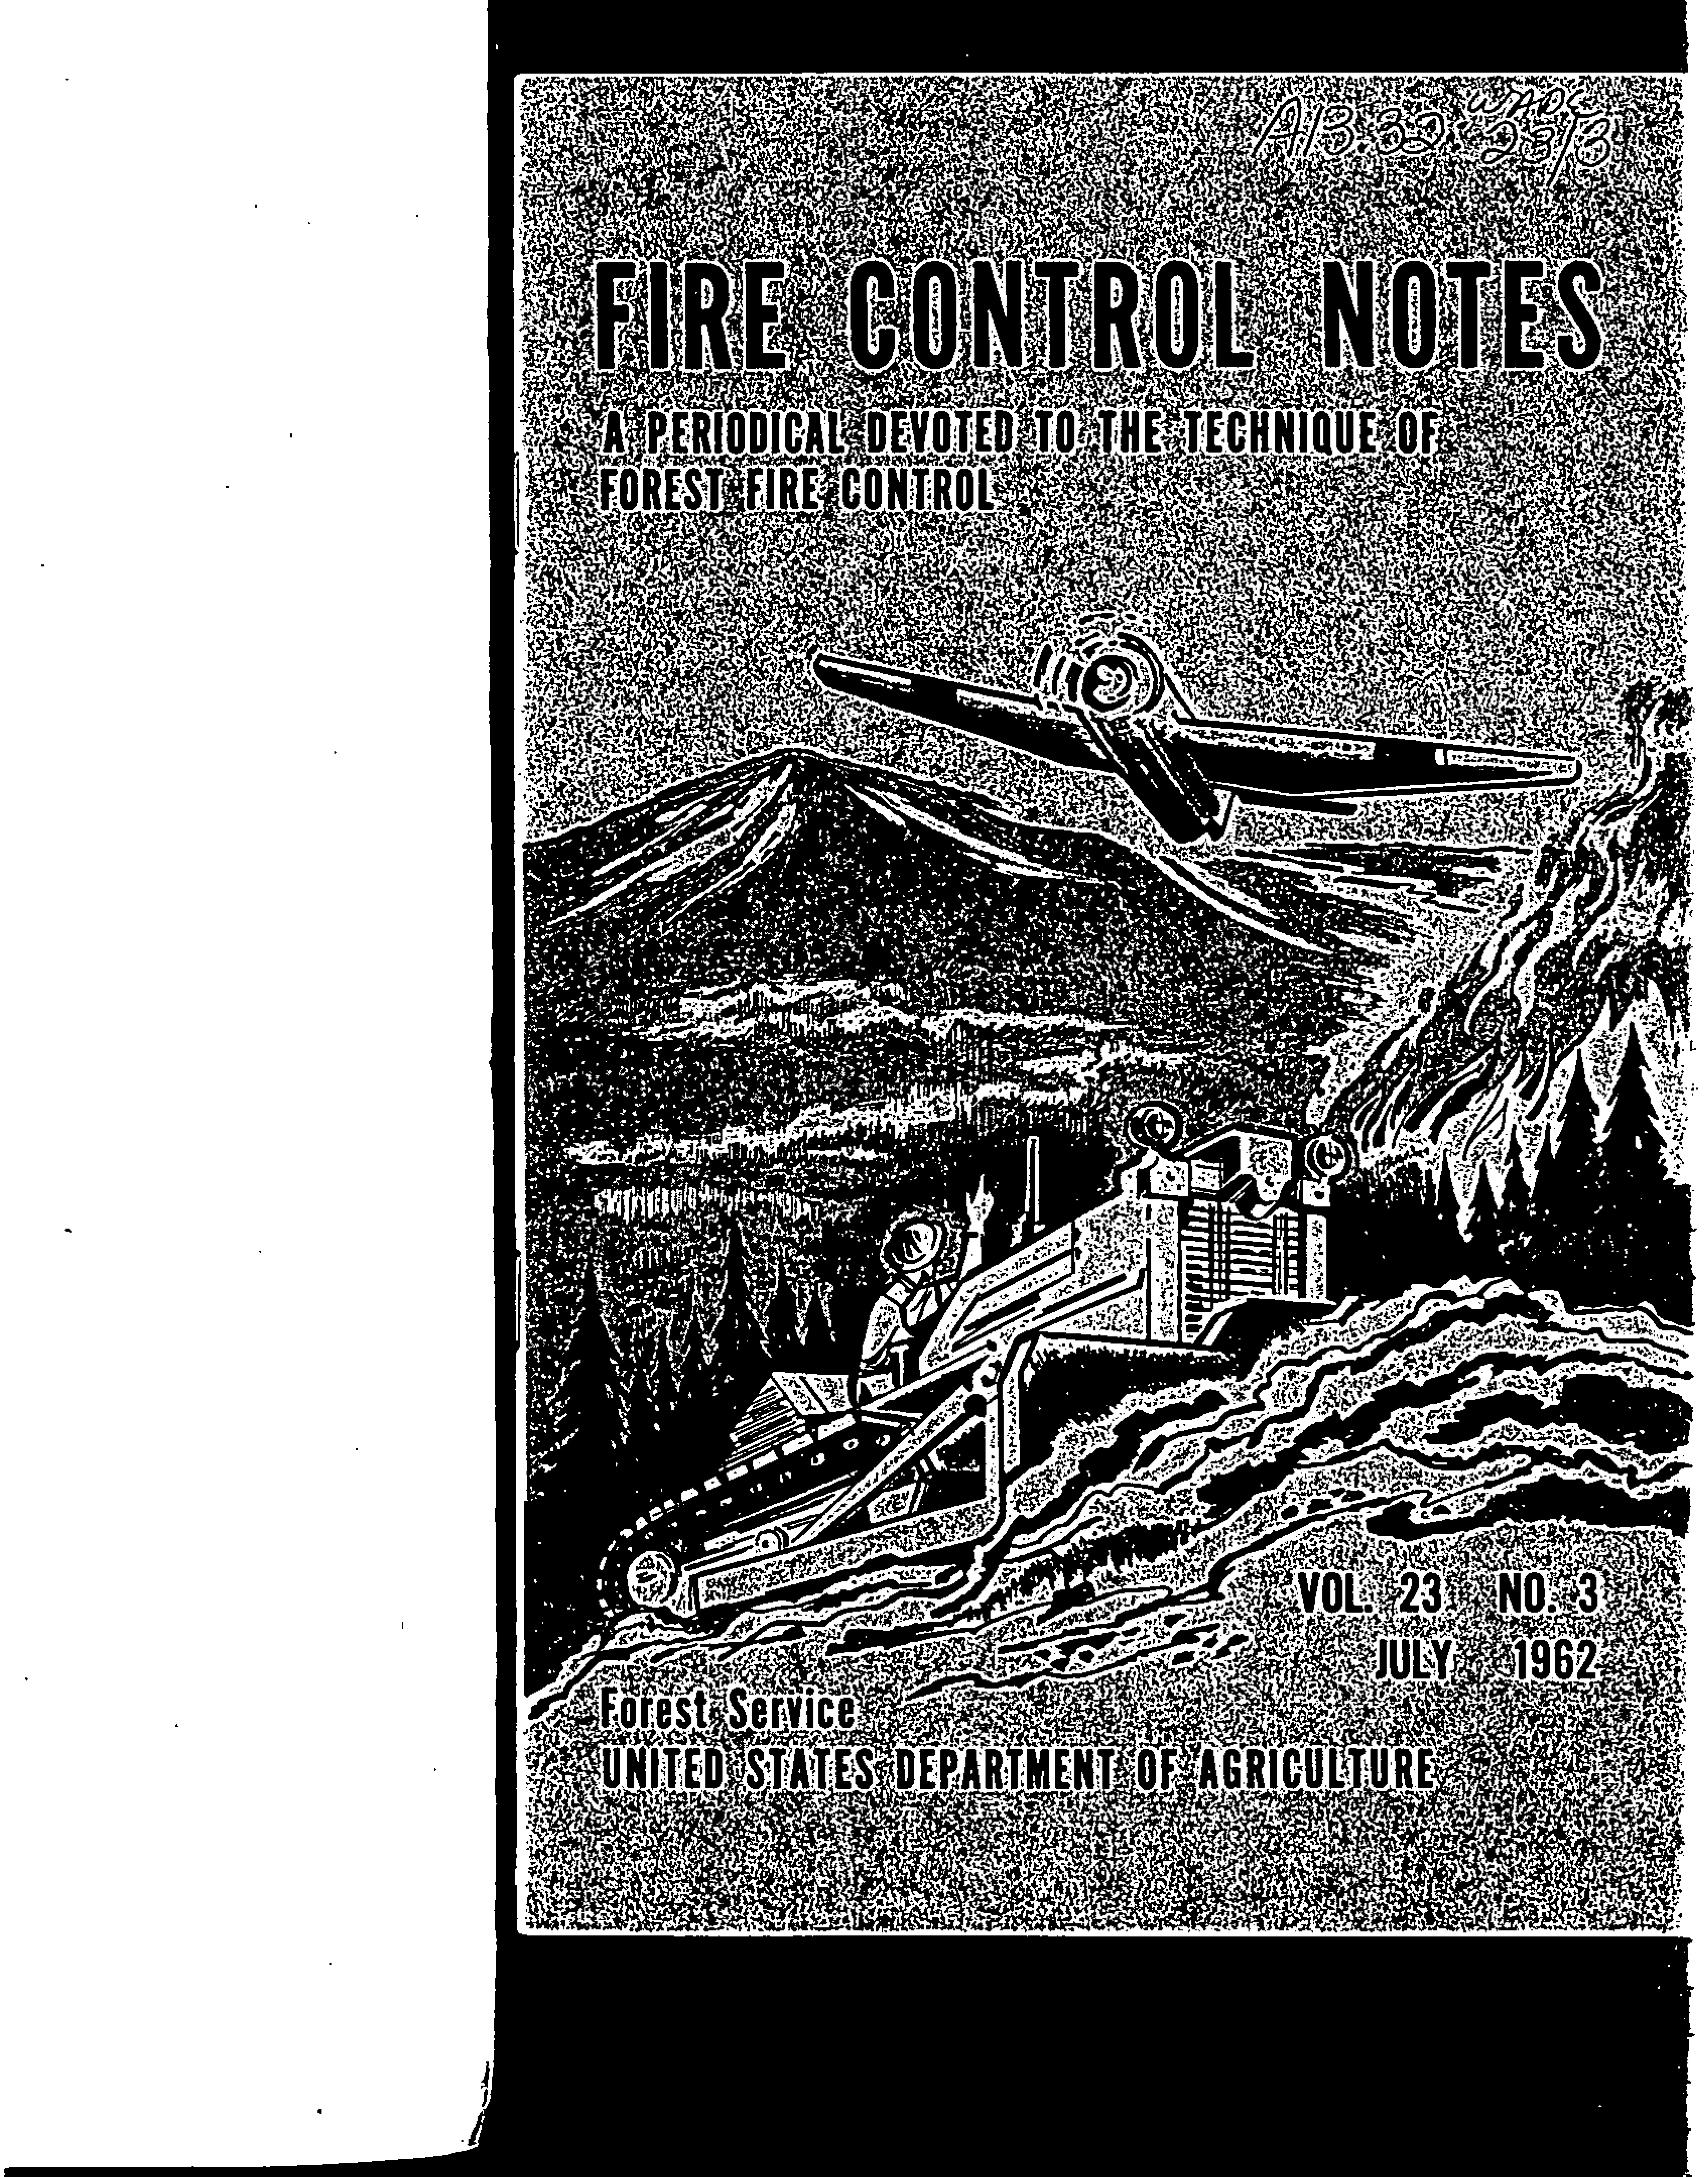 Cover of Fire Management Today Volume 23, Issue 03